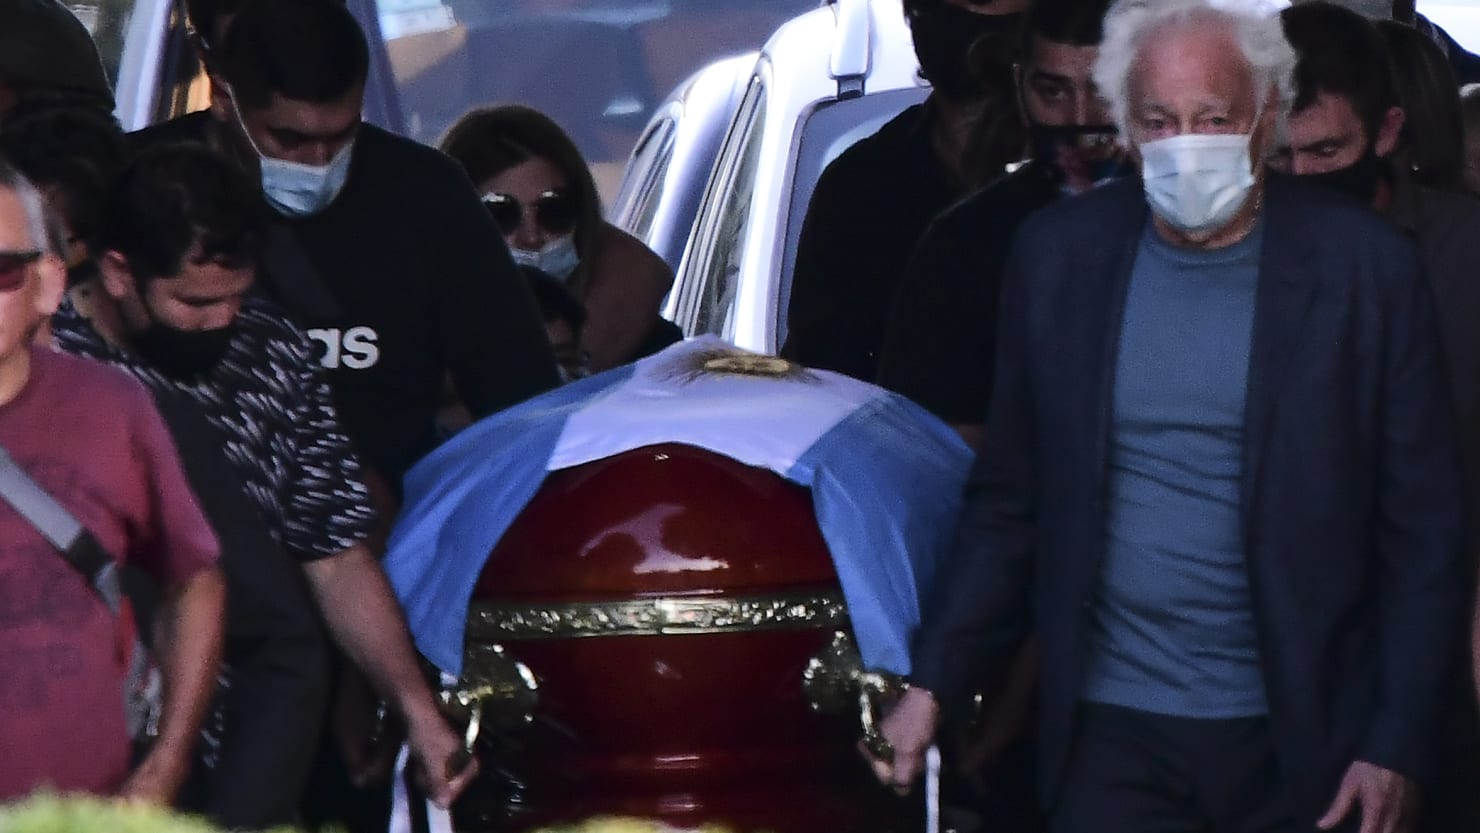 Funeral Workers' Selfies With Body of Diego Maradona Spark Outrage